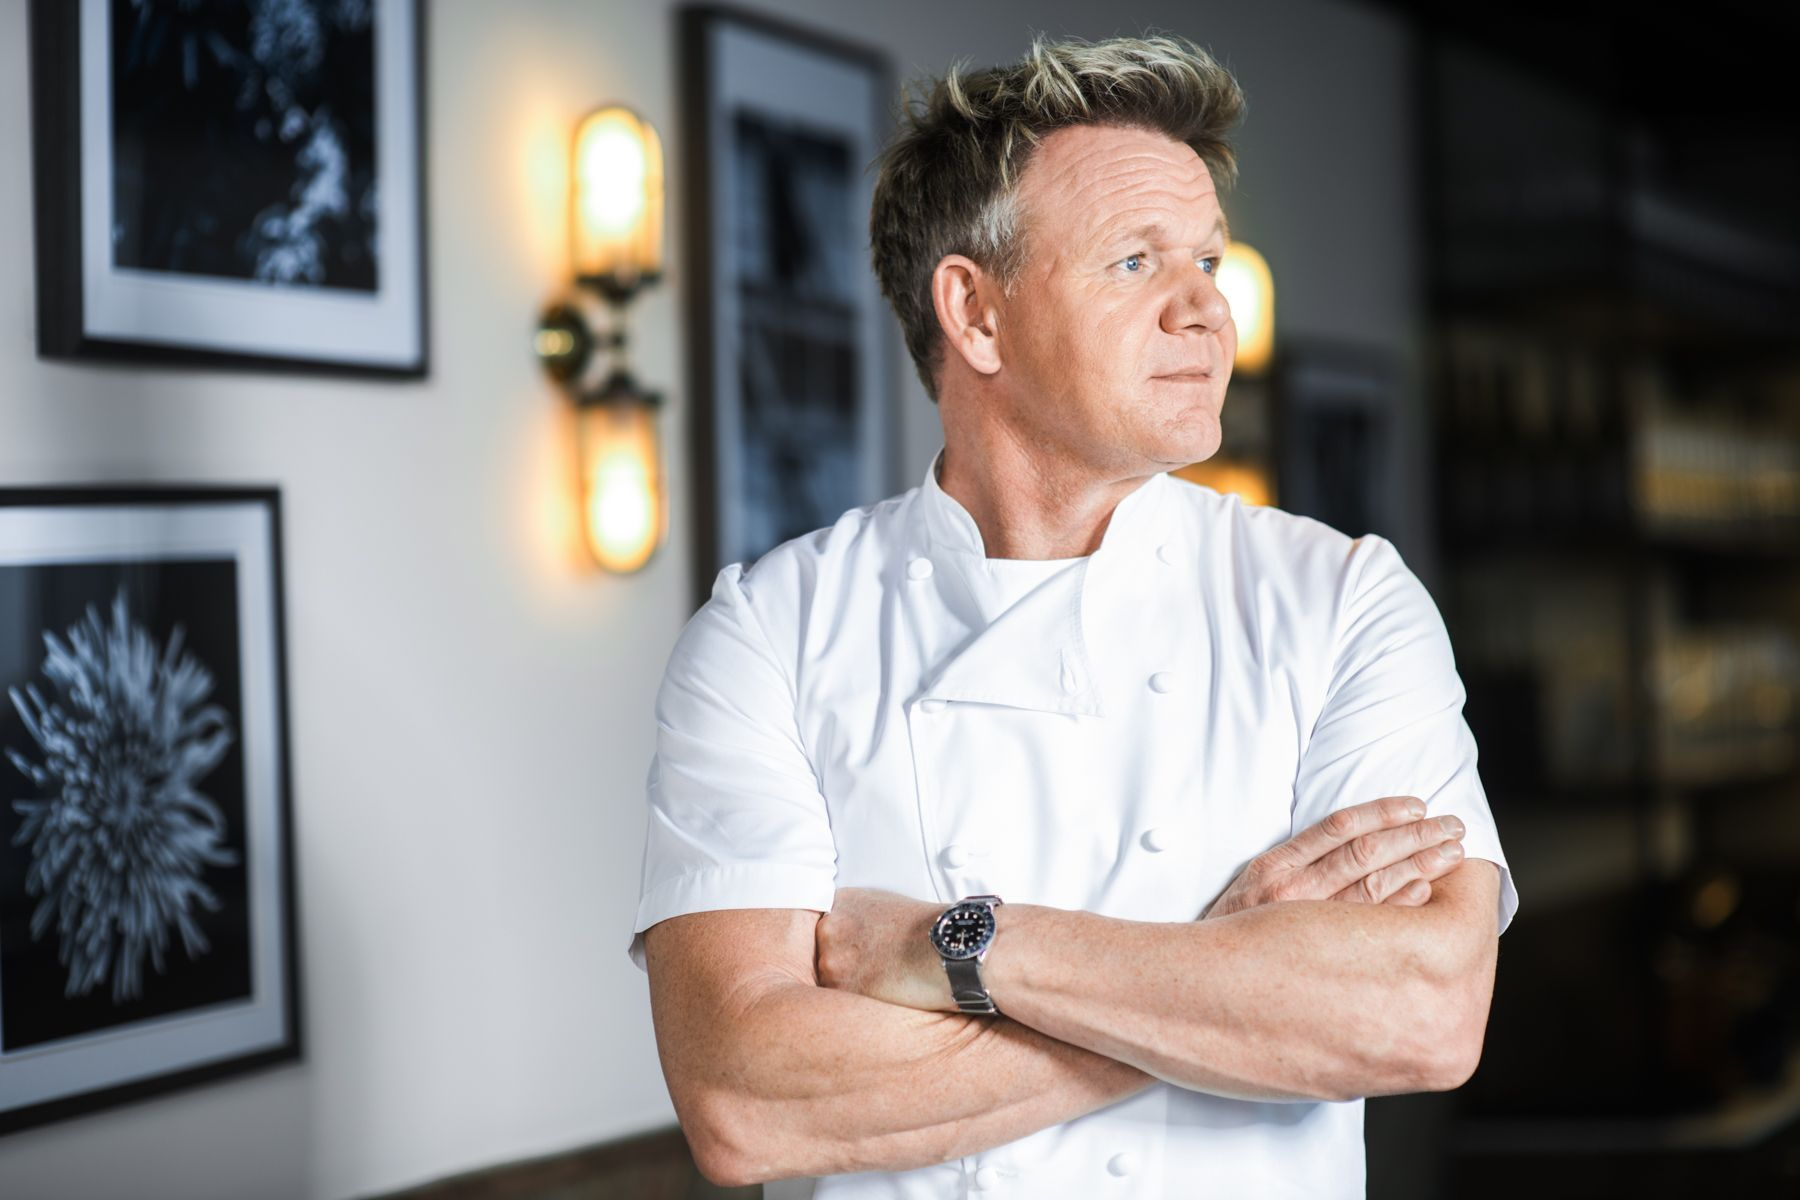 Gordon Ramsay Shuts Down Three Of His Hong Kong Restaurants